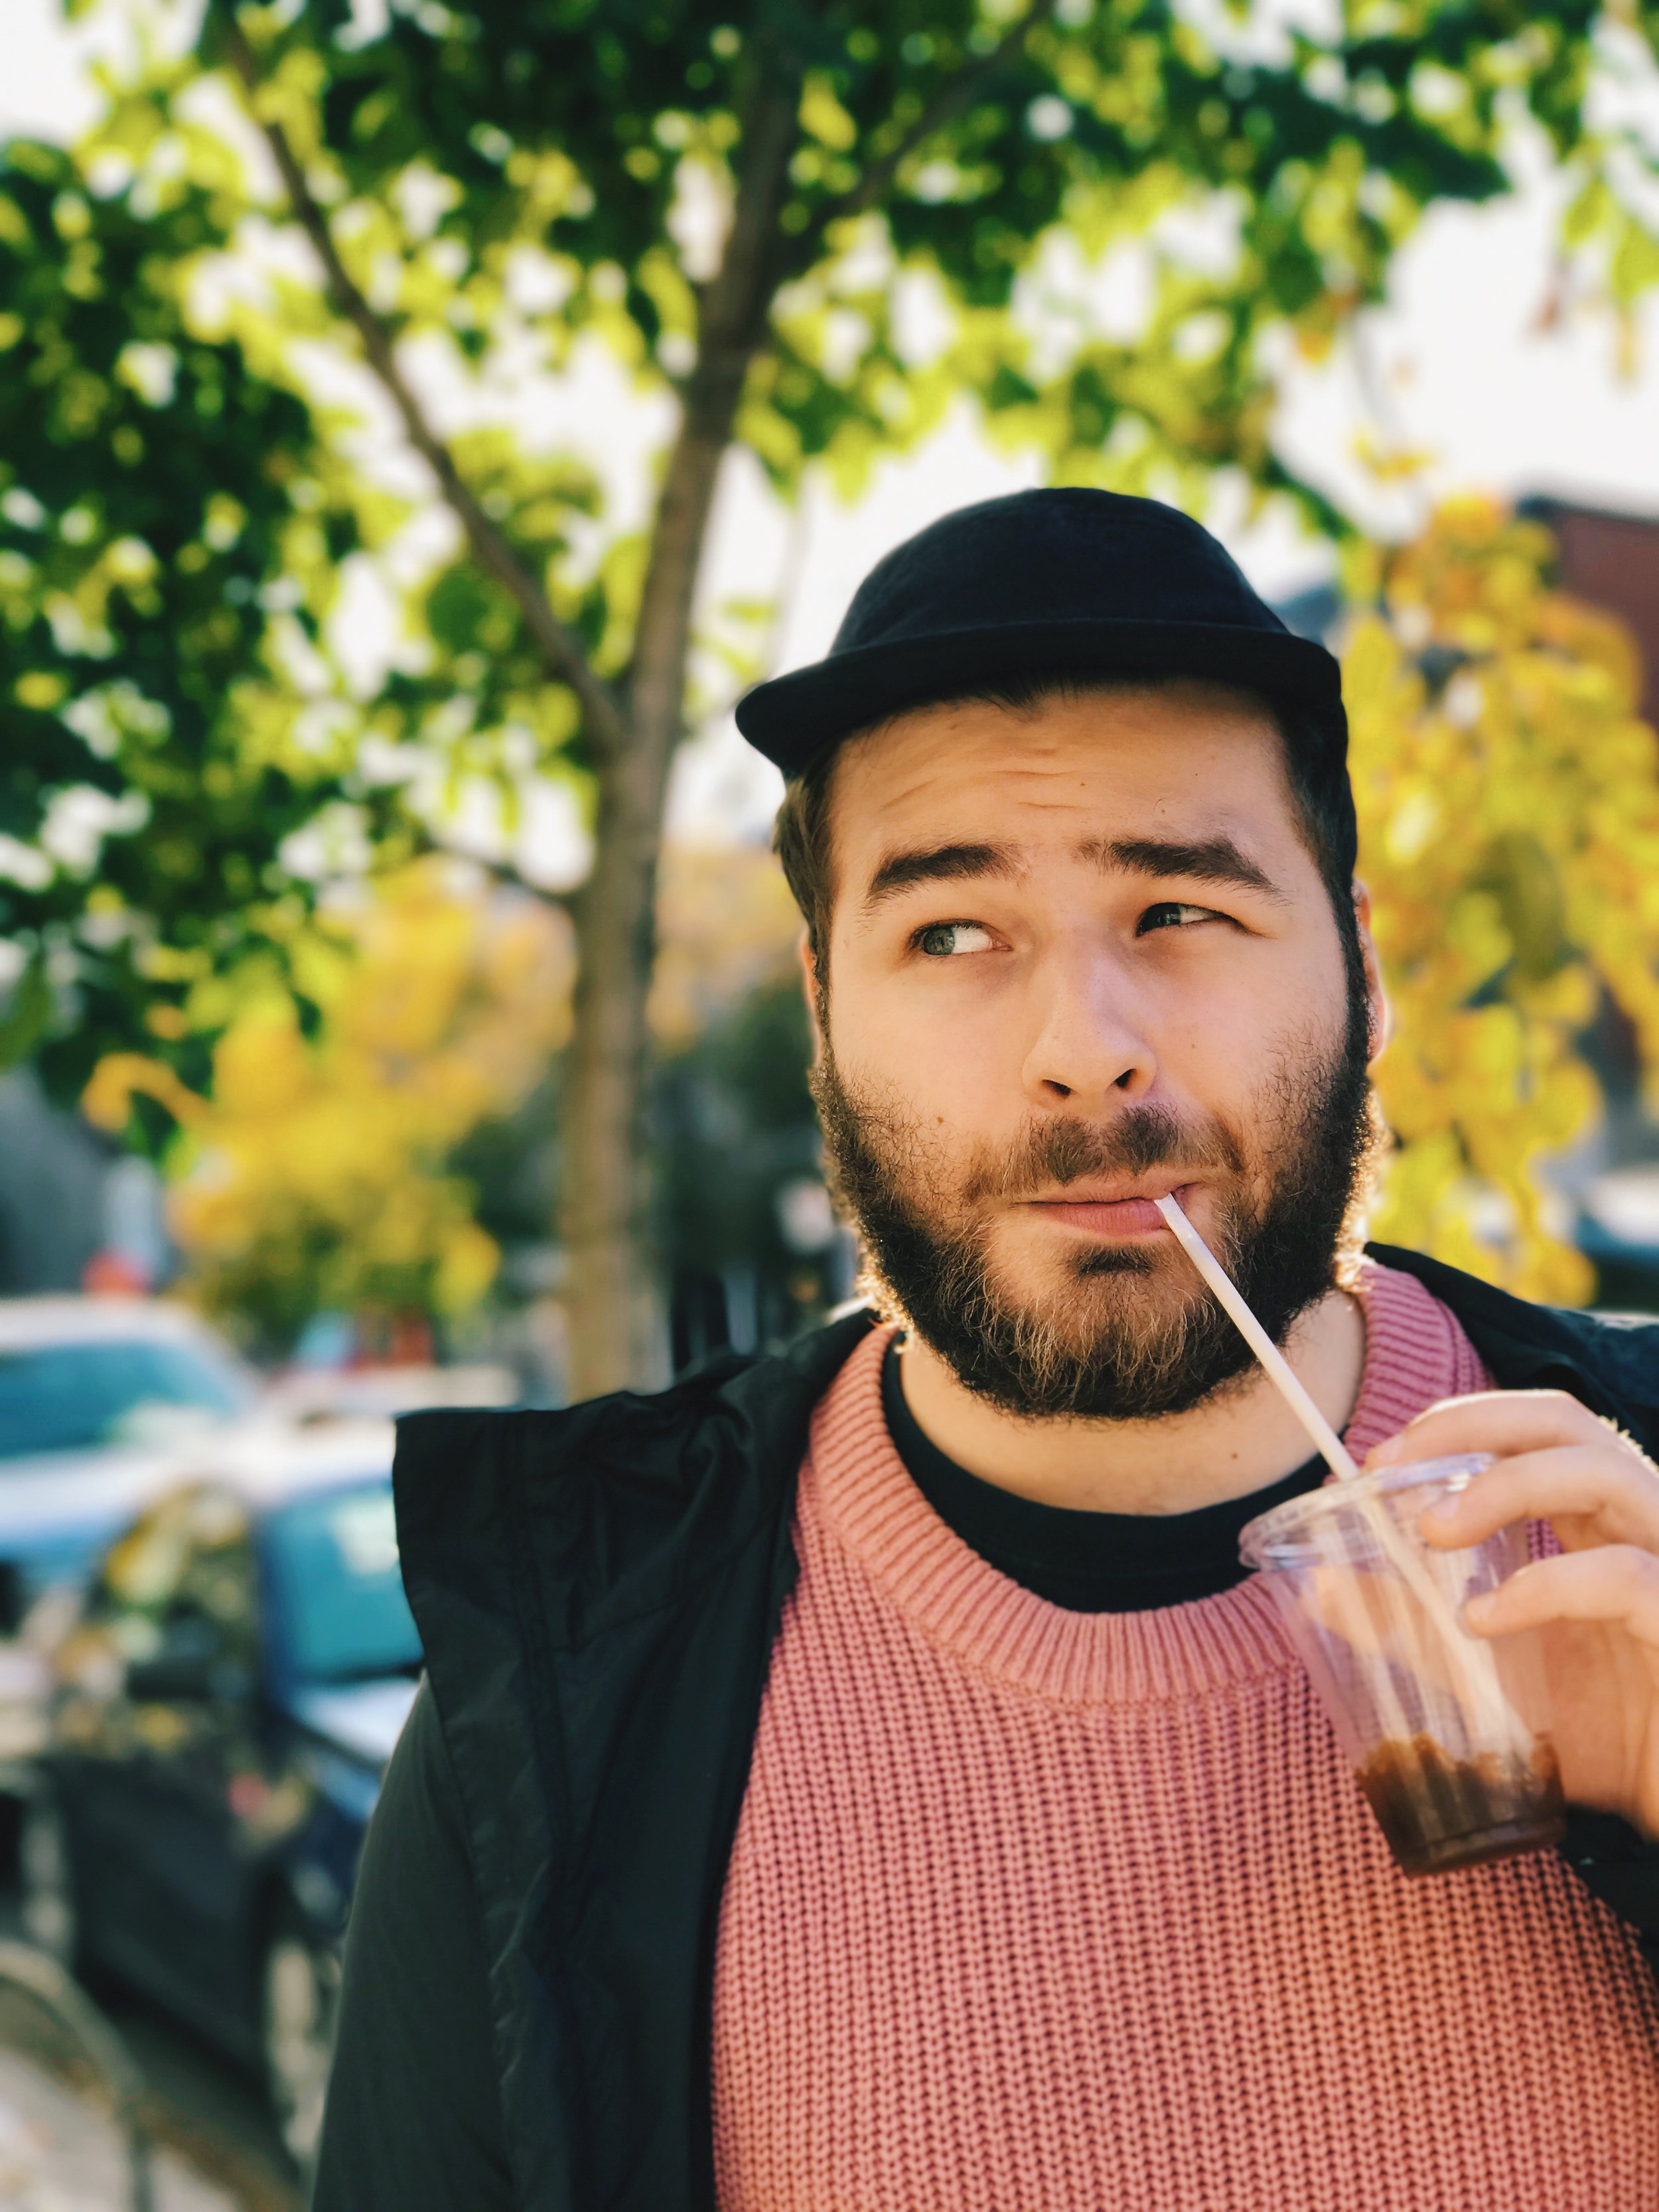 Portrait of my boyfriend, Mile-End, Montreal. Exposure 1/138 at f/2.8. Edited with VSCO.